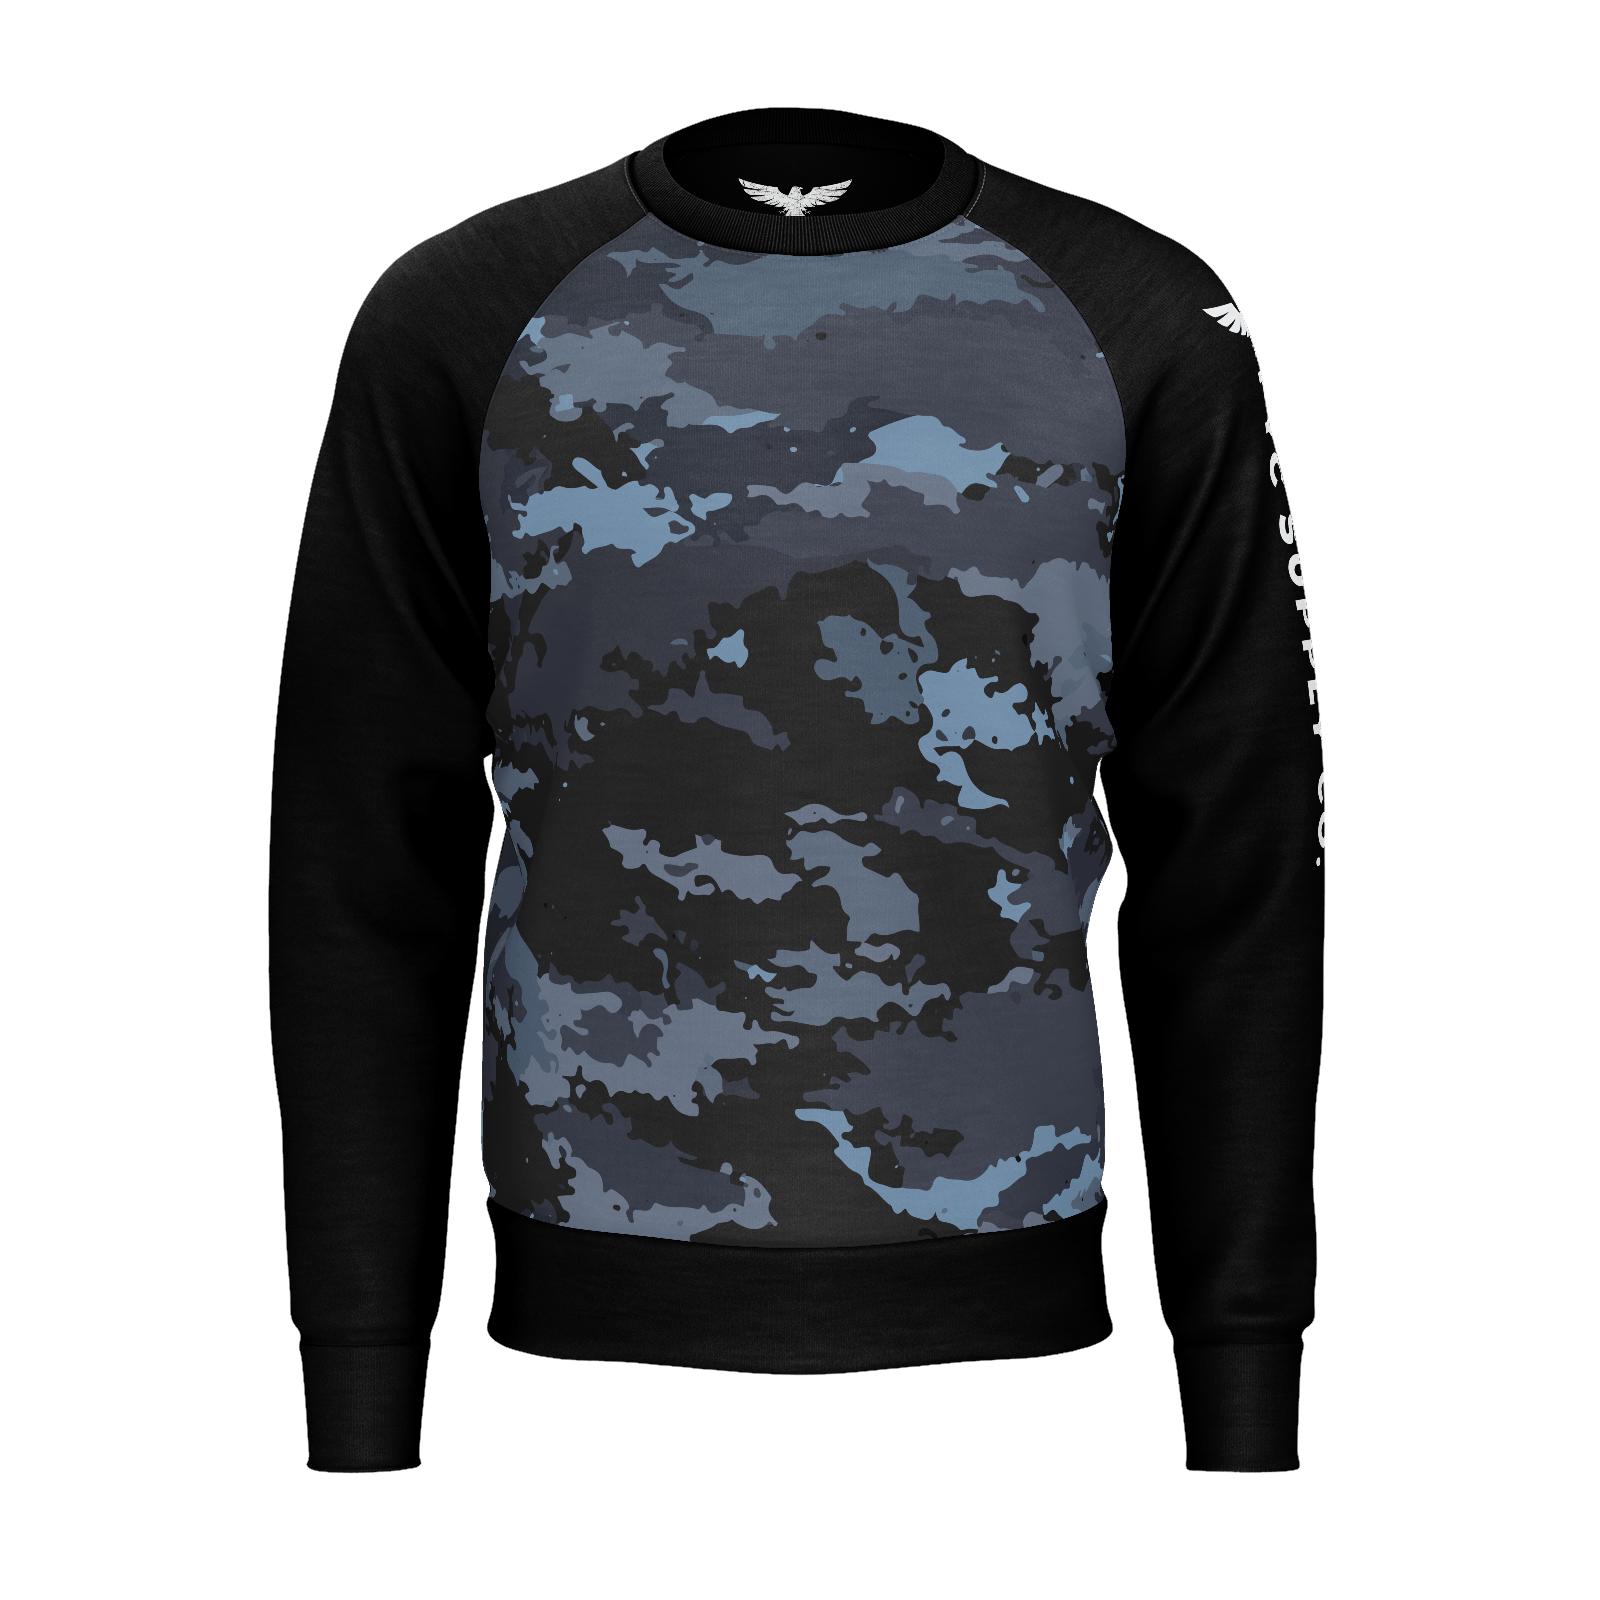 Men's Supply Co. Coast Camo Black Sleeved Sustainable Raglan Sweatshirt - Find Your Coast Supply Co.